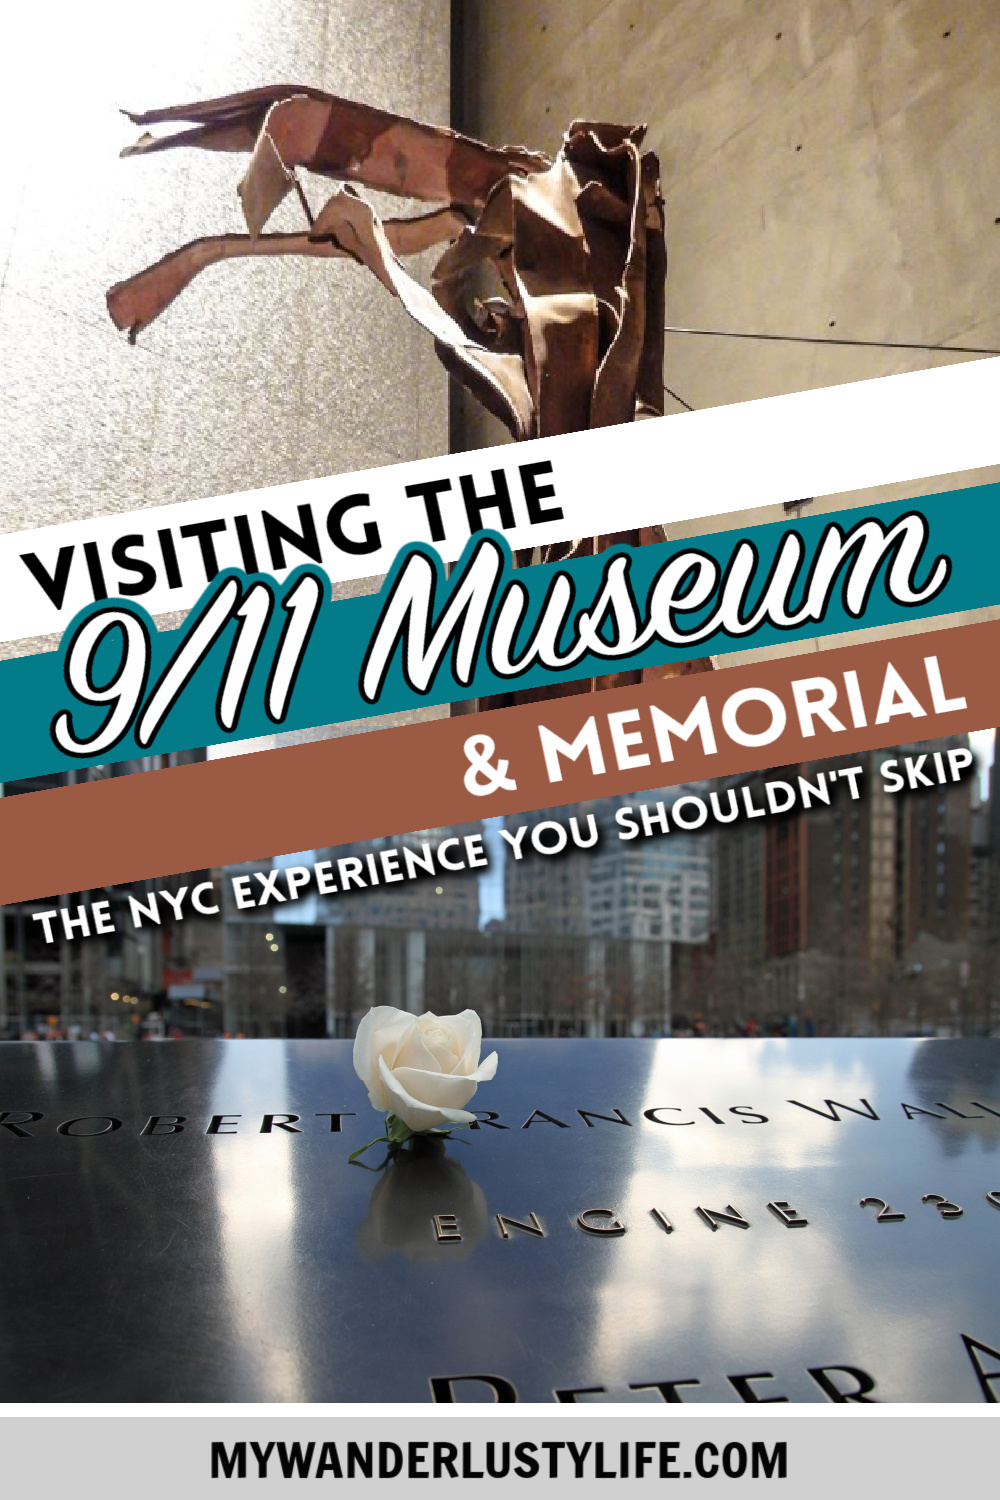 Visiting the 9/11 Museum and Memorial in New York City: A photo essay and personal reflection. What the experience is like, what you can see, One World Trade Center observatory